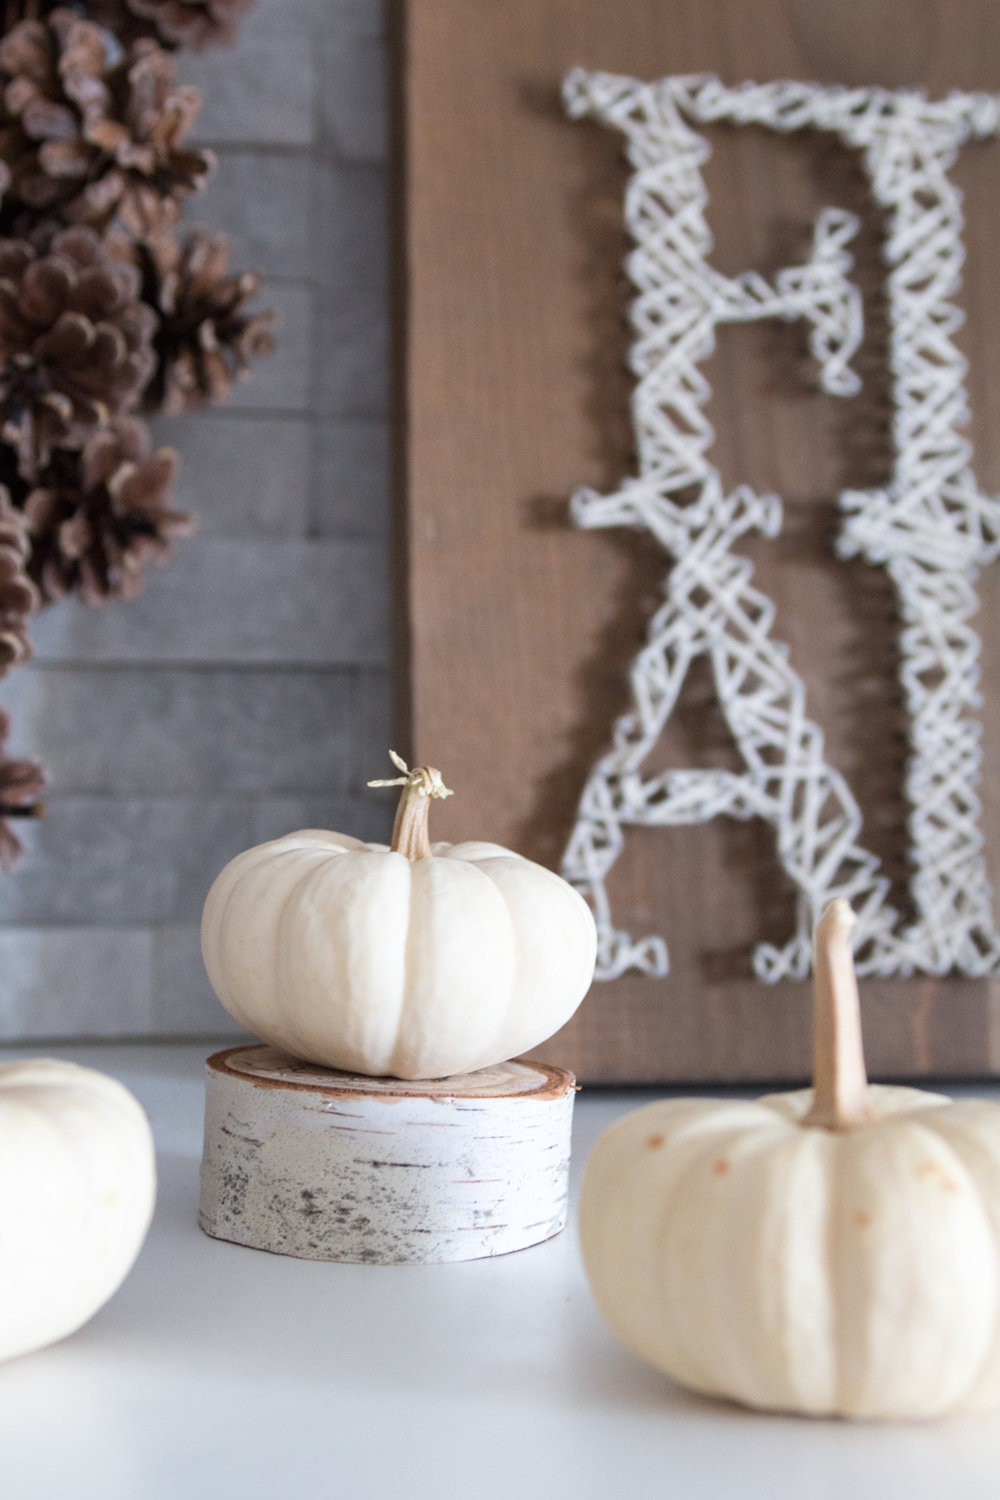 How to make your own string art wood sign. Follow the easy, step-by-step tutorial for this rustic autumn home decor idea.